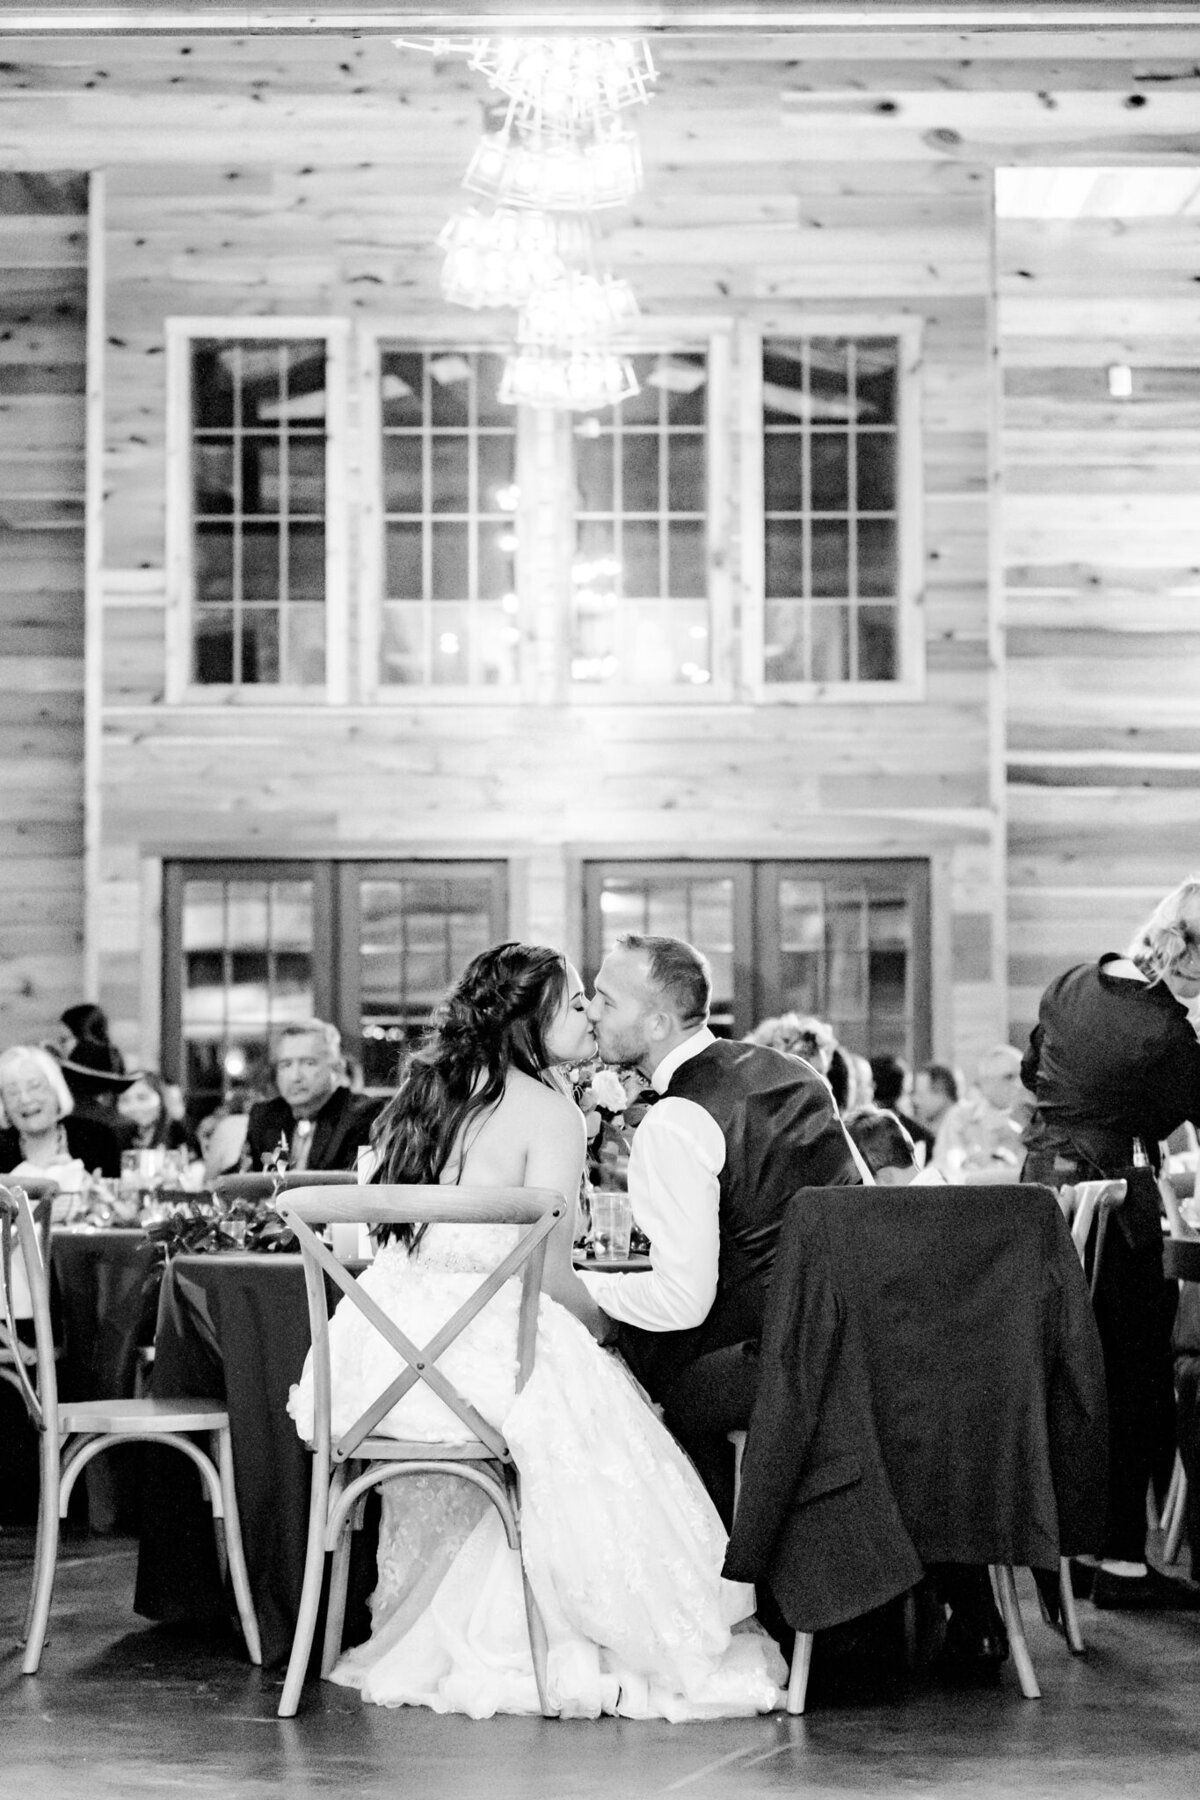 Wedding-at-The-Barn-at-Swallows-Eve-Fry-Dawn-Elizabeth-Studios-0104